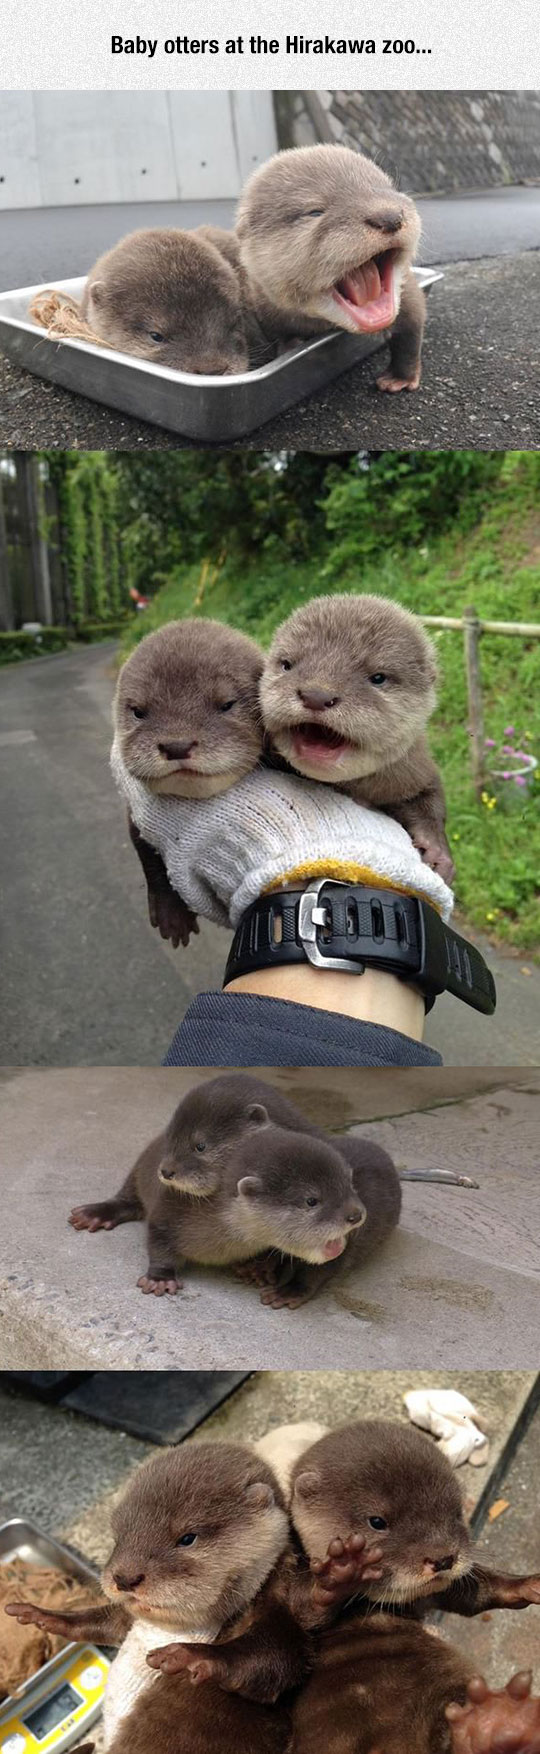 Tiny Baby Otters